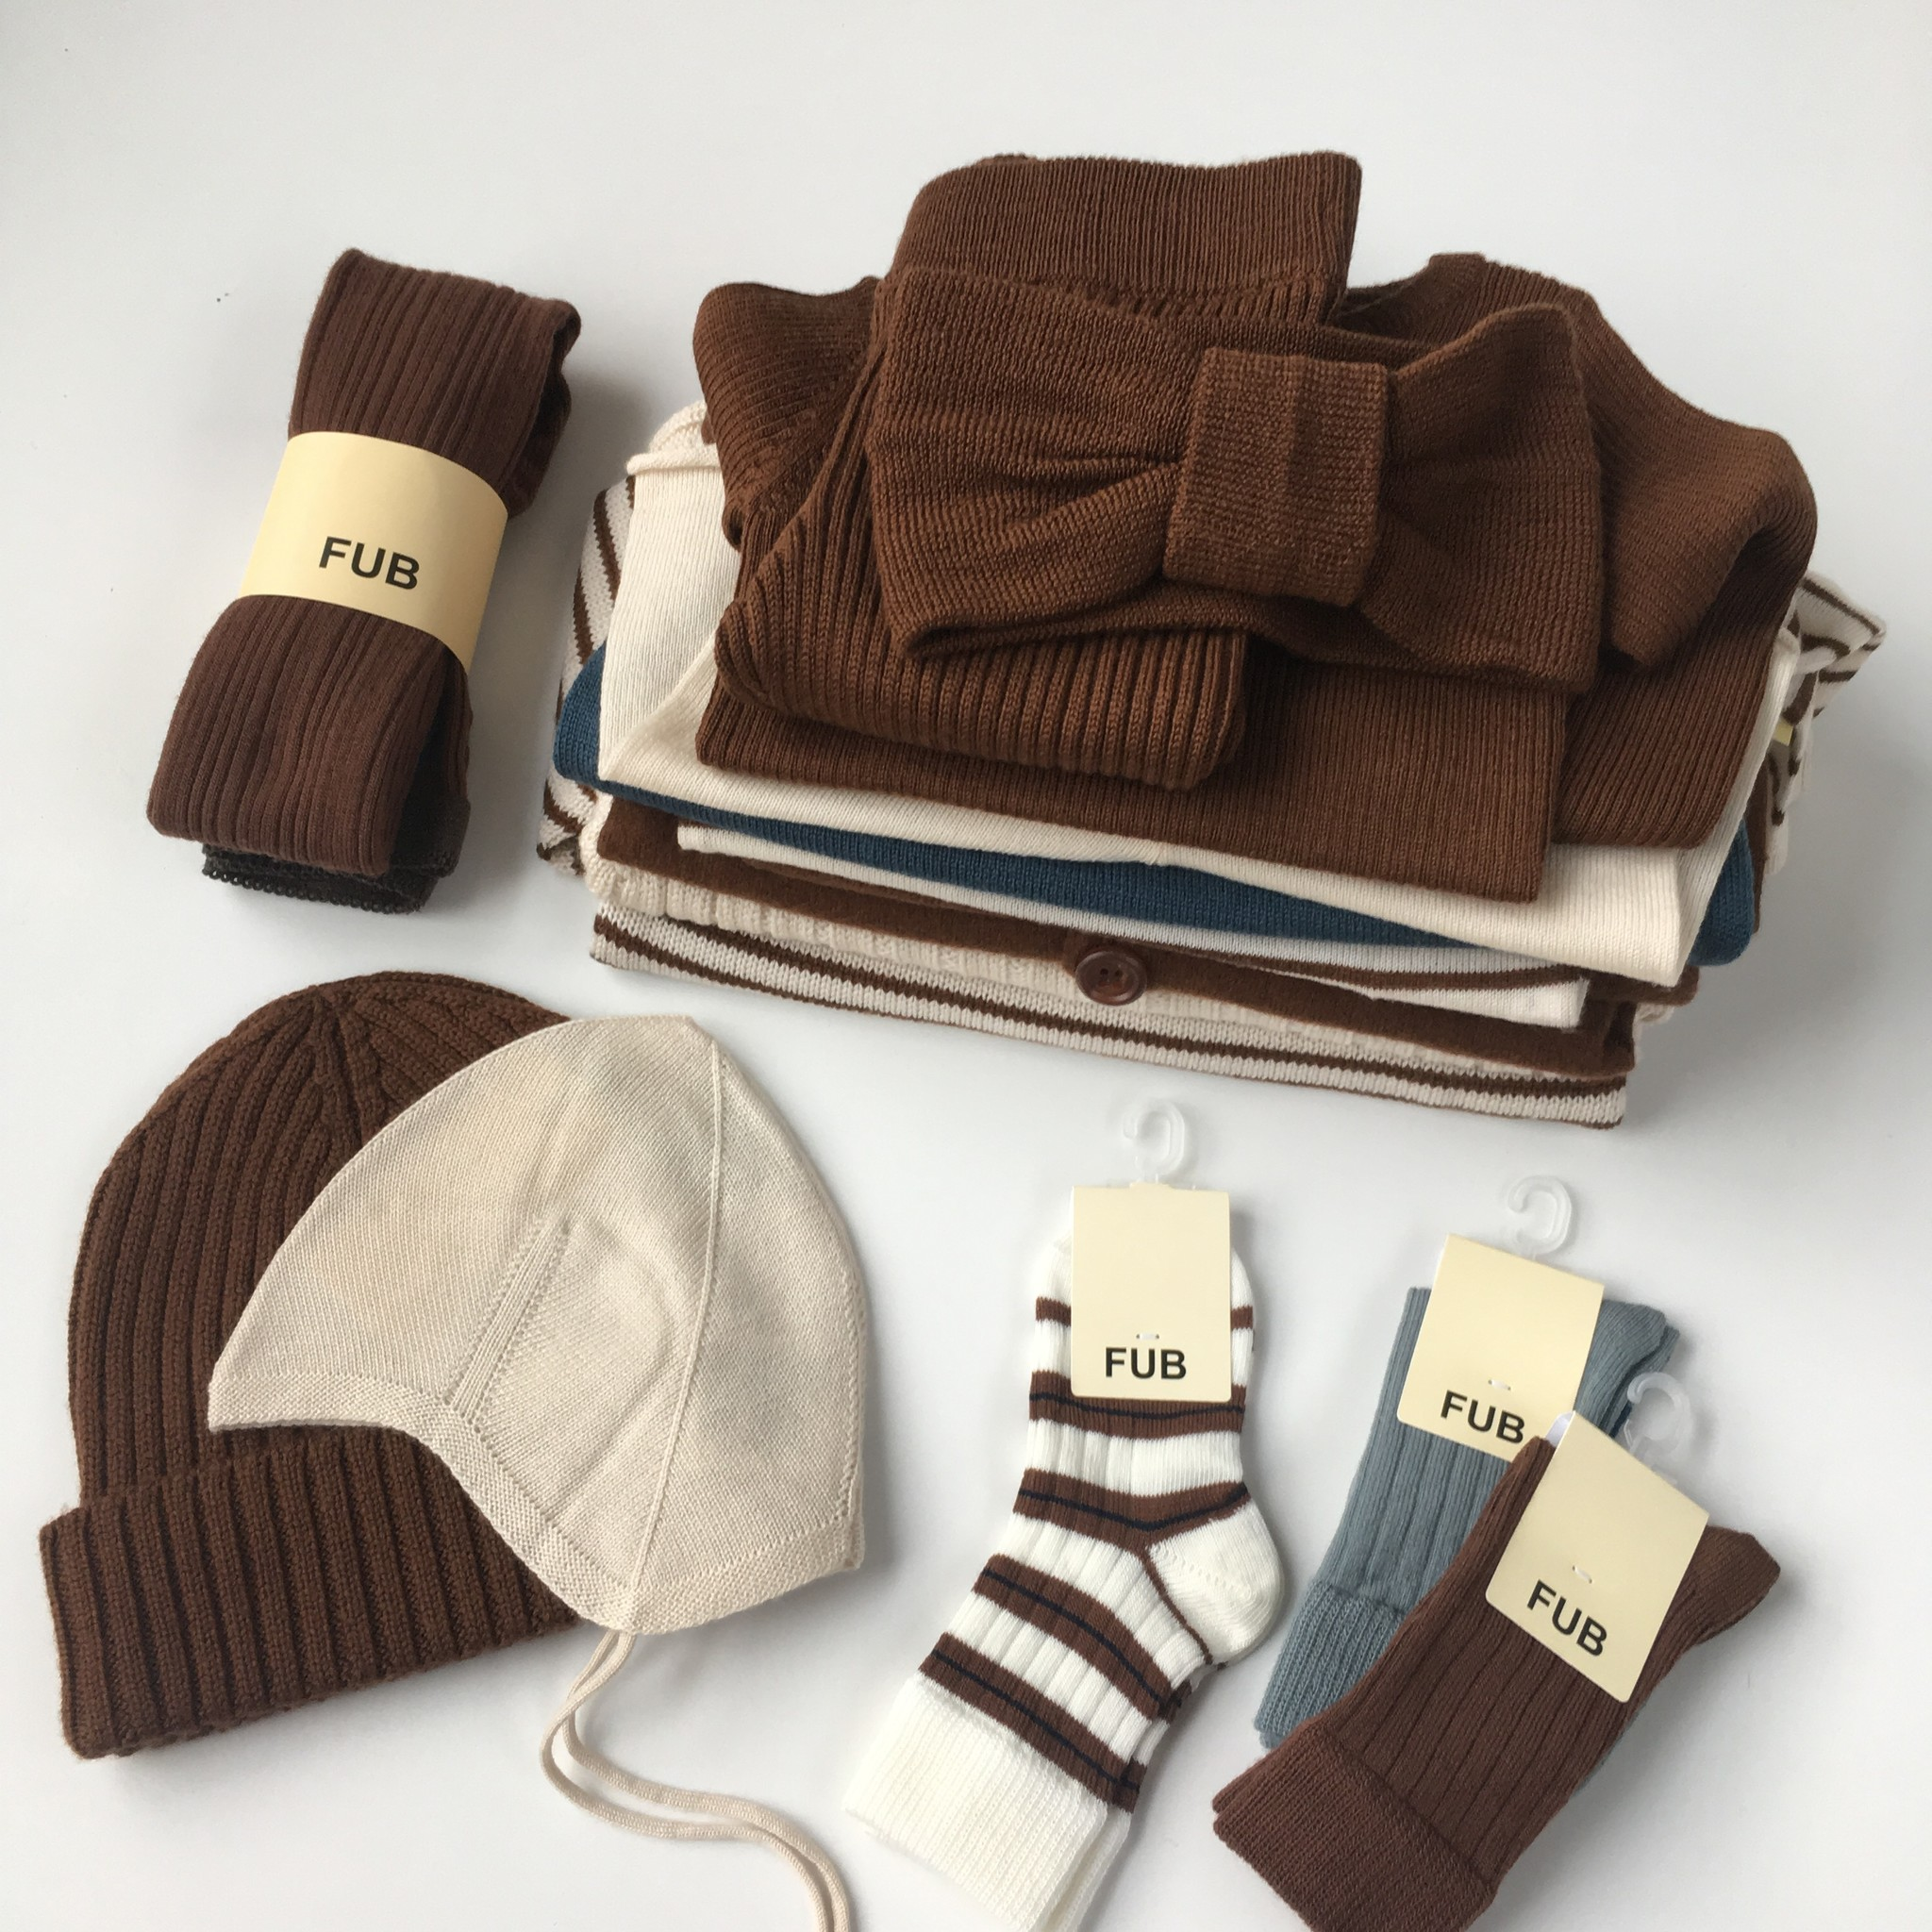 FUB boiled wool baby overalls - 100% merino wool - umber brown - 56 to 92